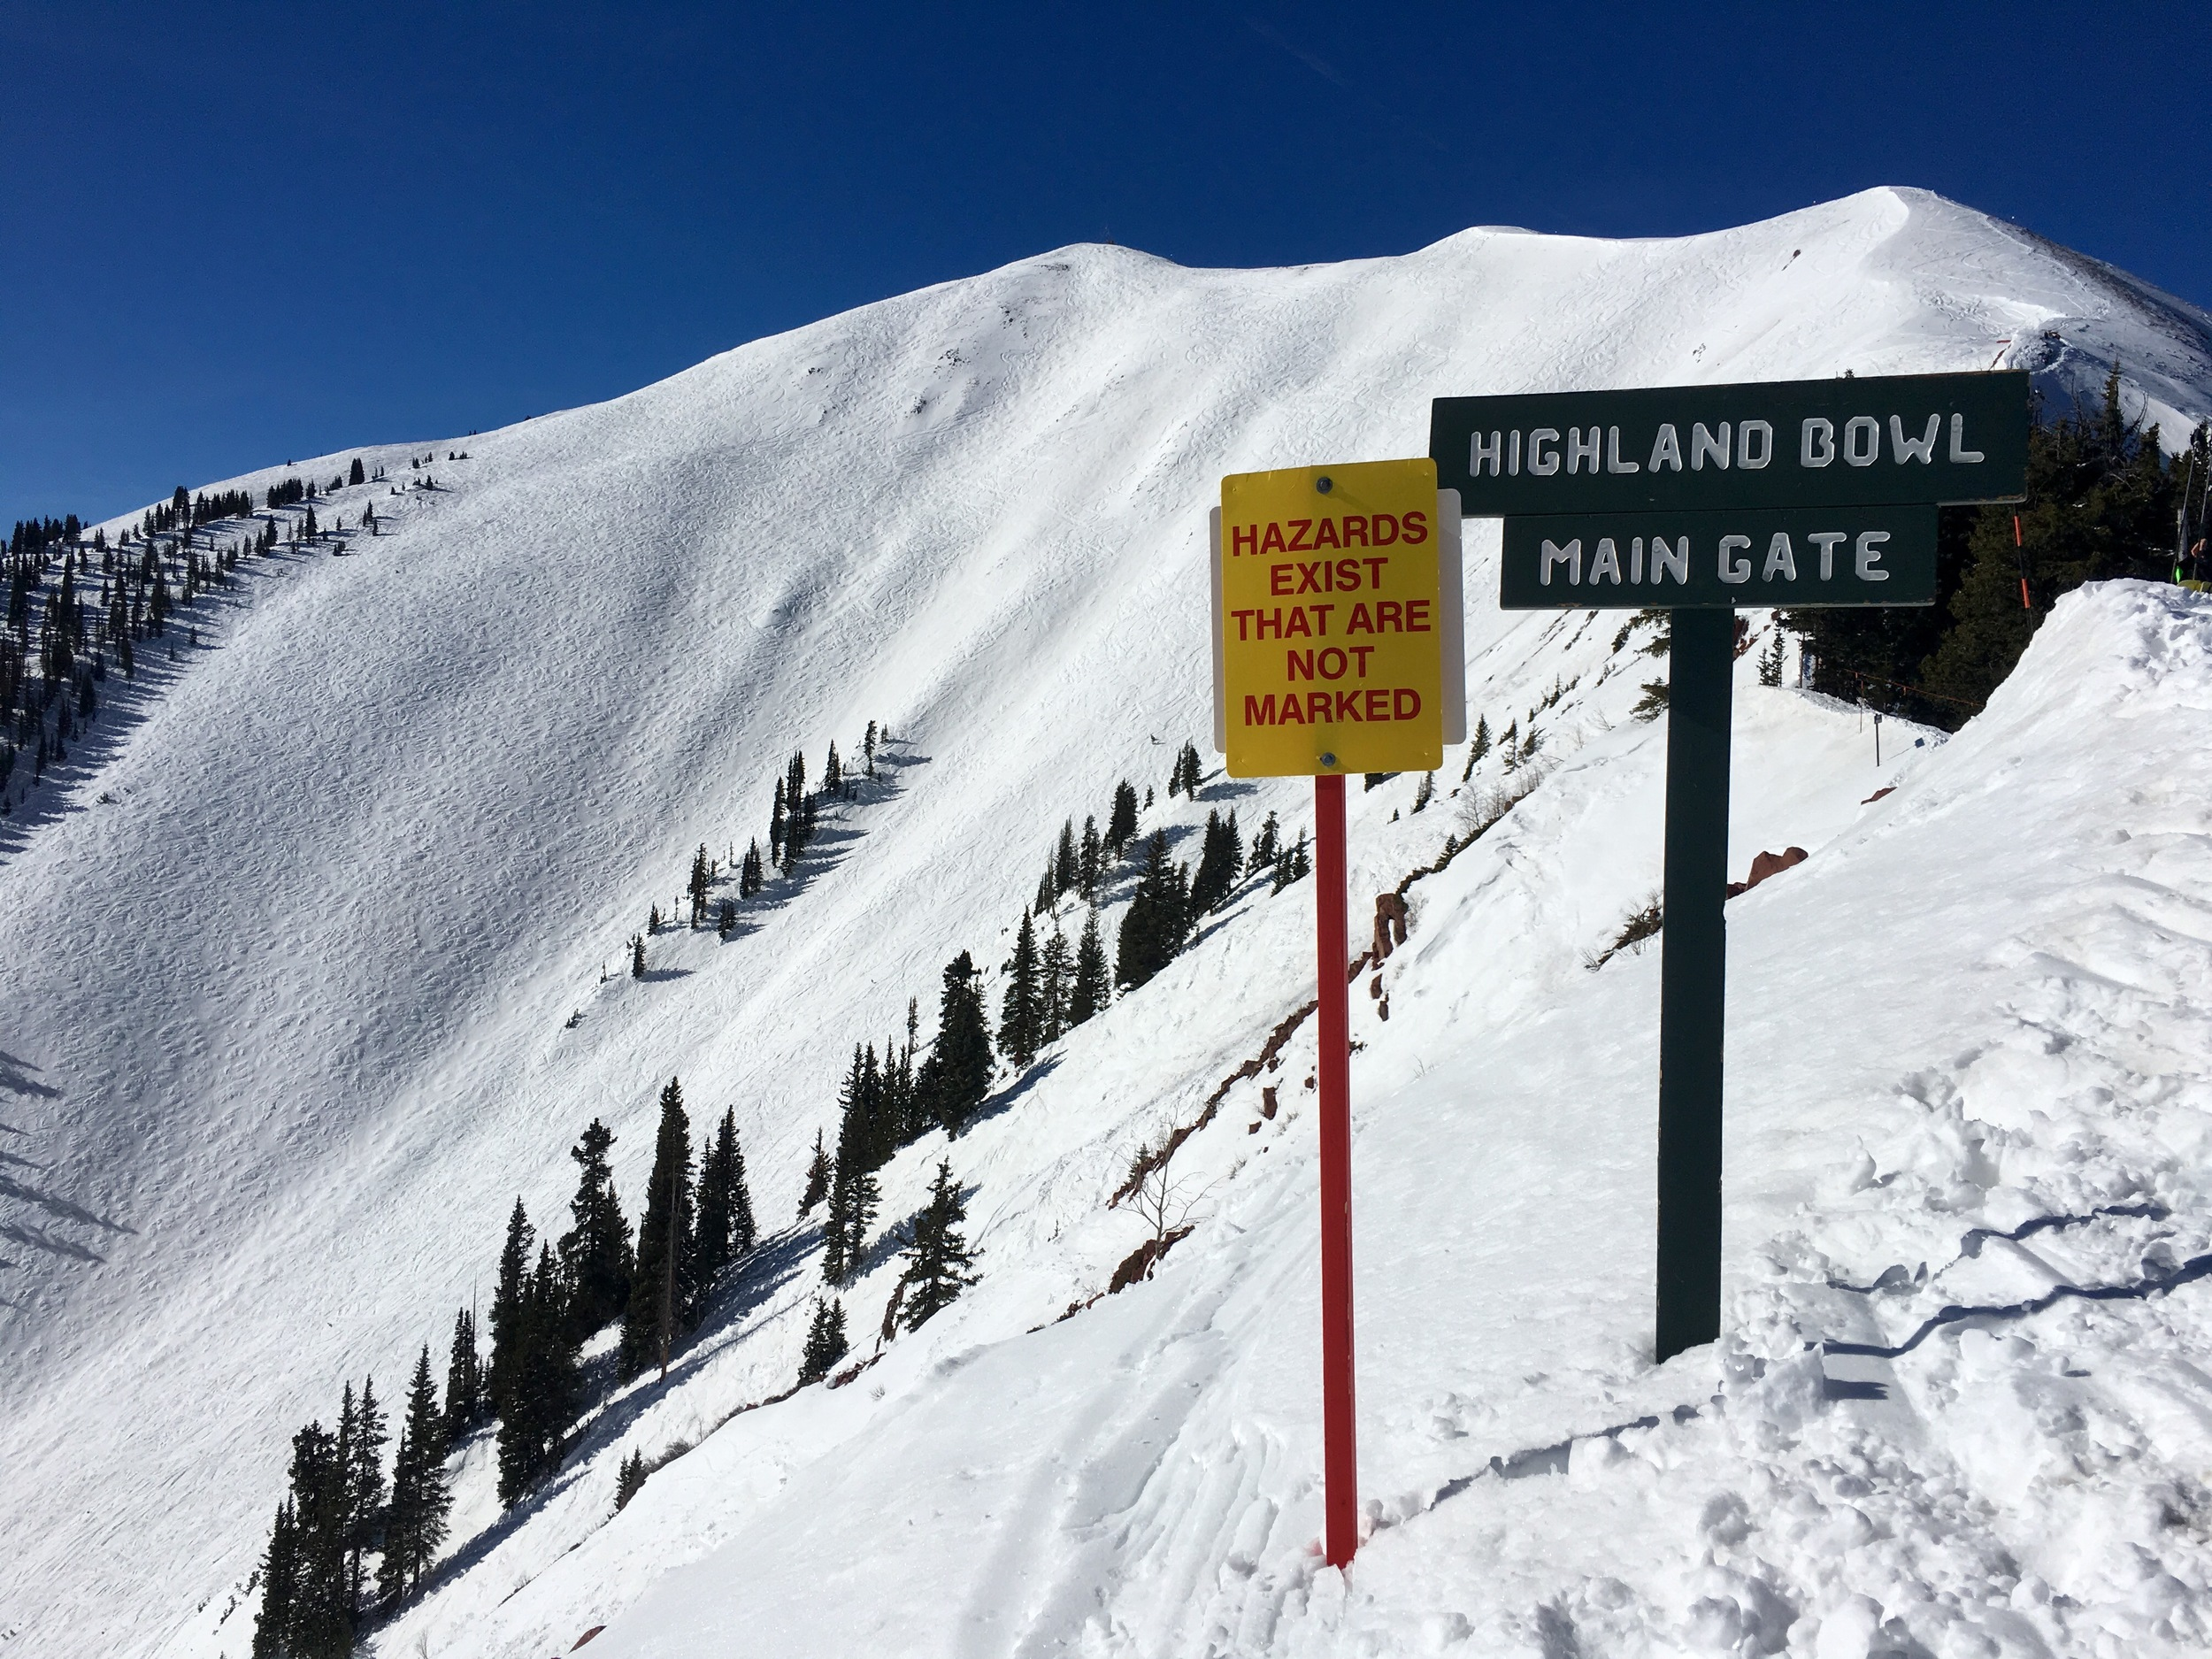 Aspen Highlands, including the legendary Highland Bowl, is opens Friday, April 29 for the season's final three-day weekend. (@BeingAlexP)